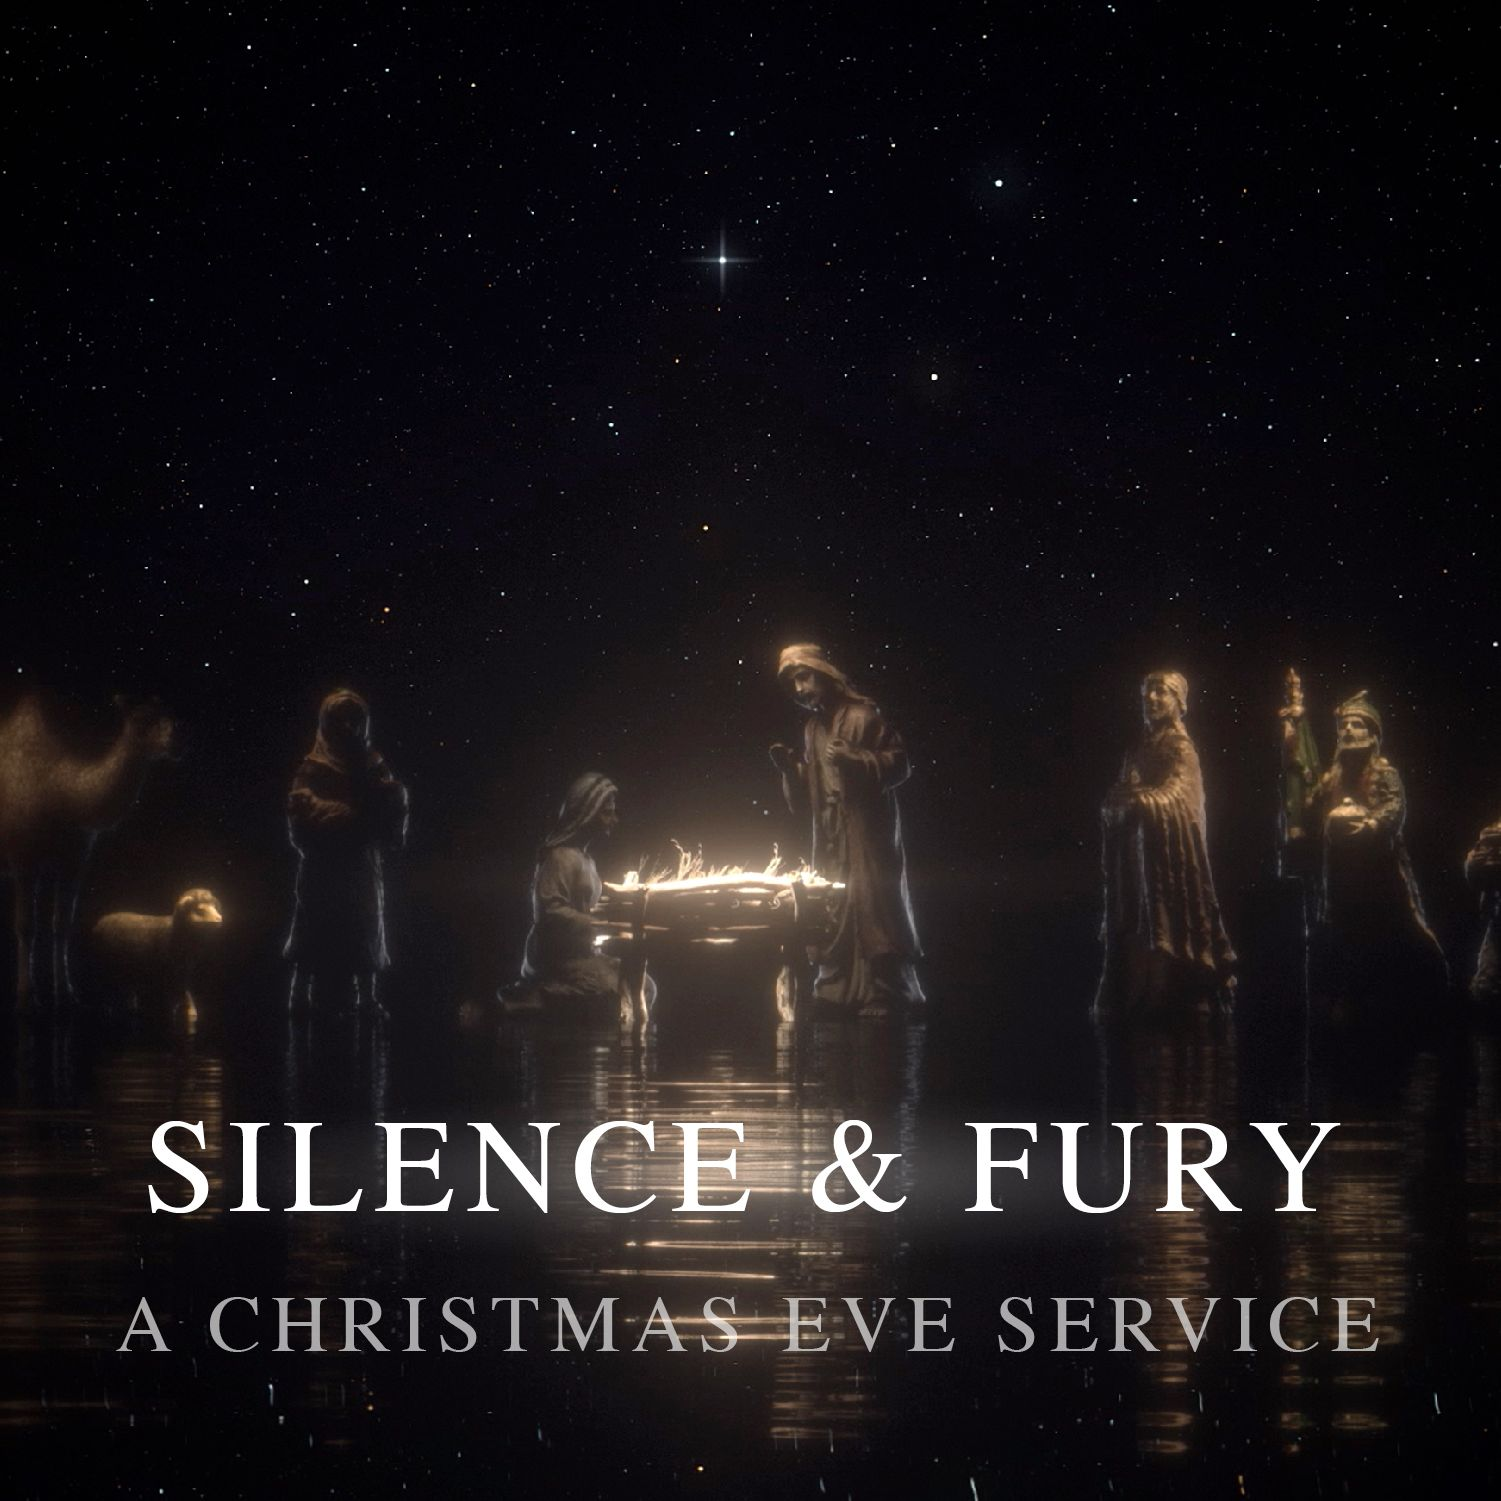 Silence & Fury graphic